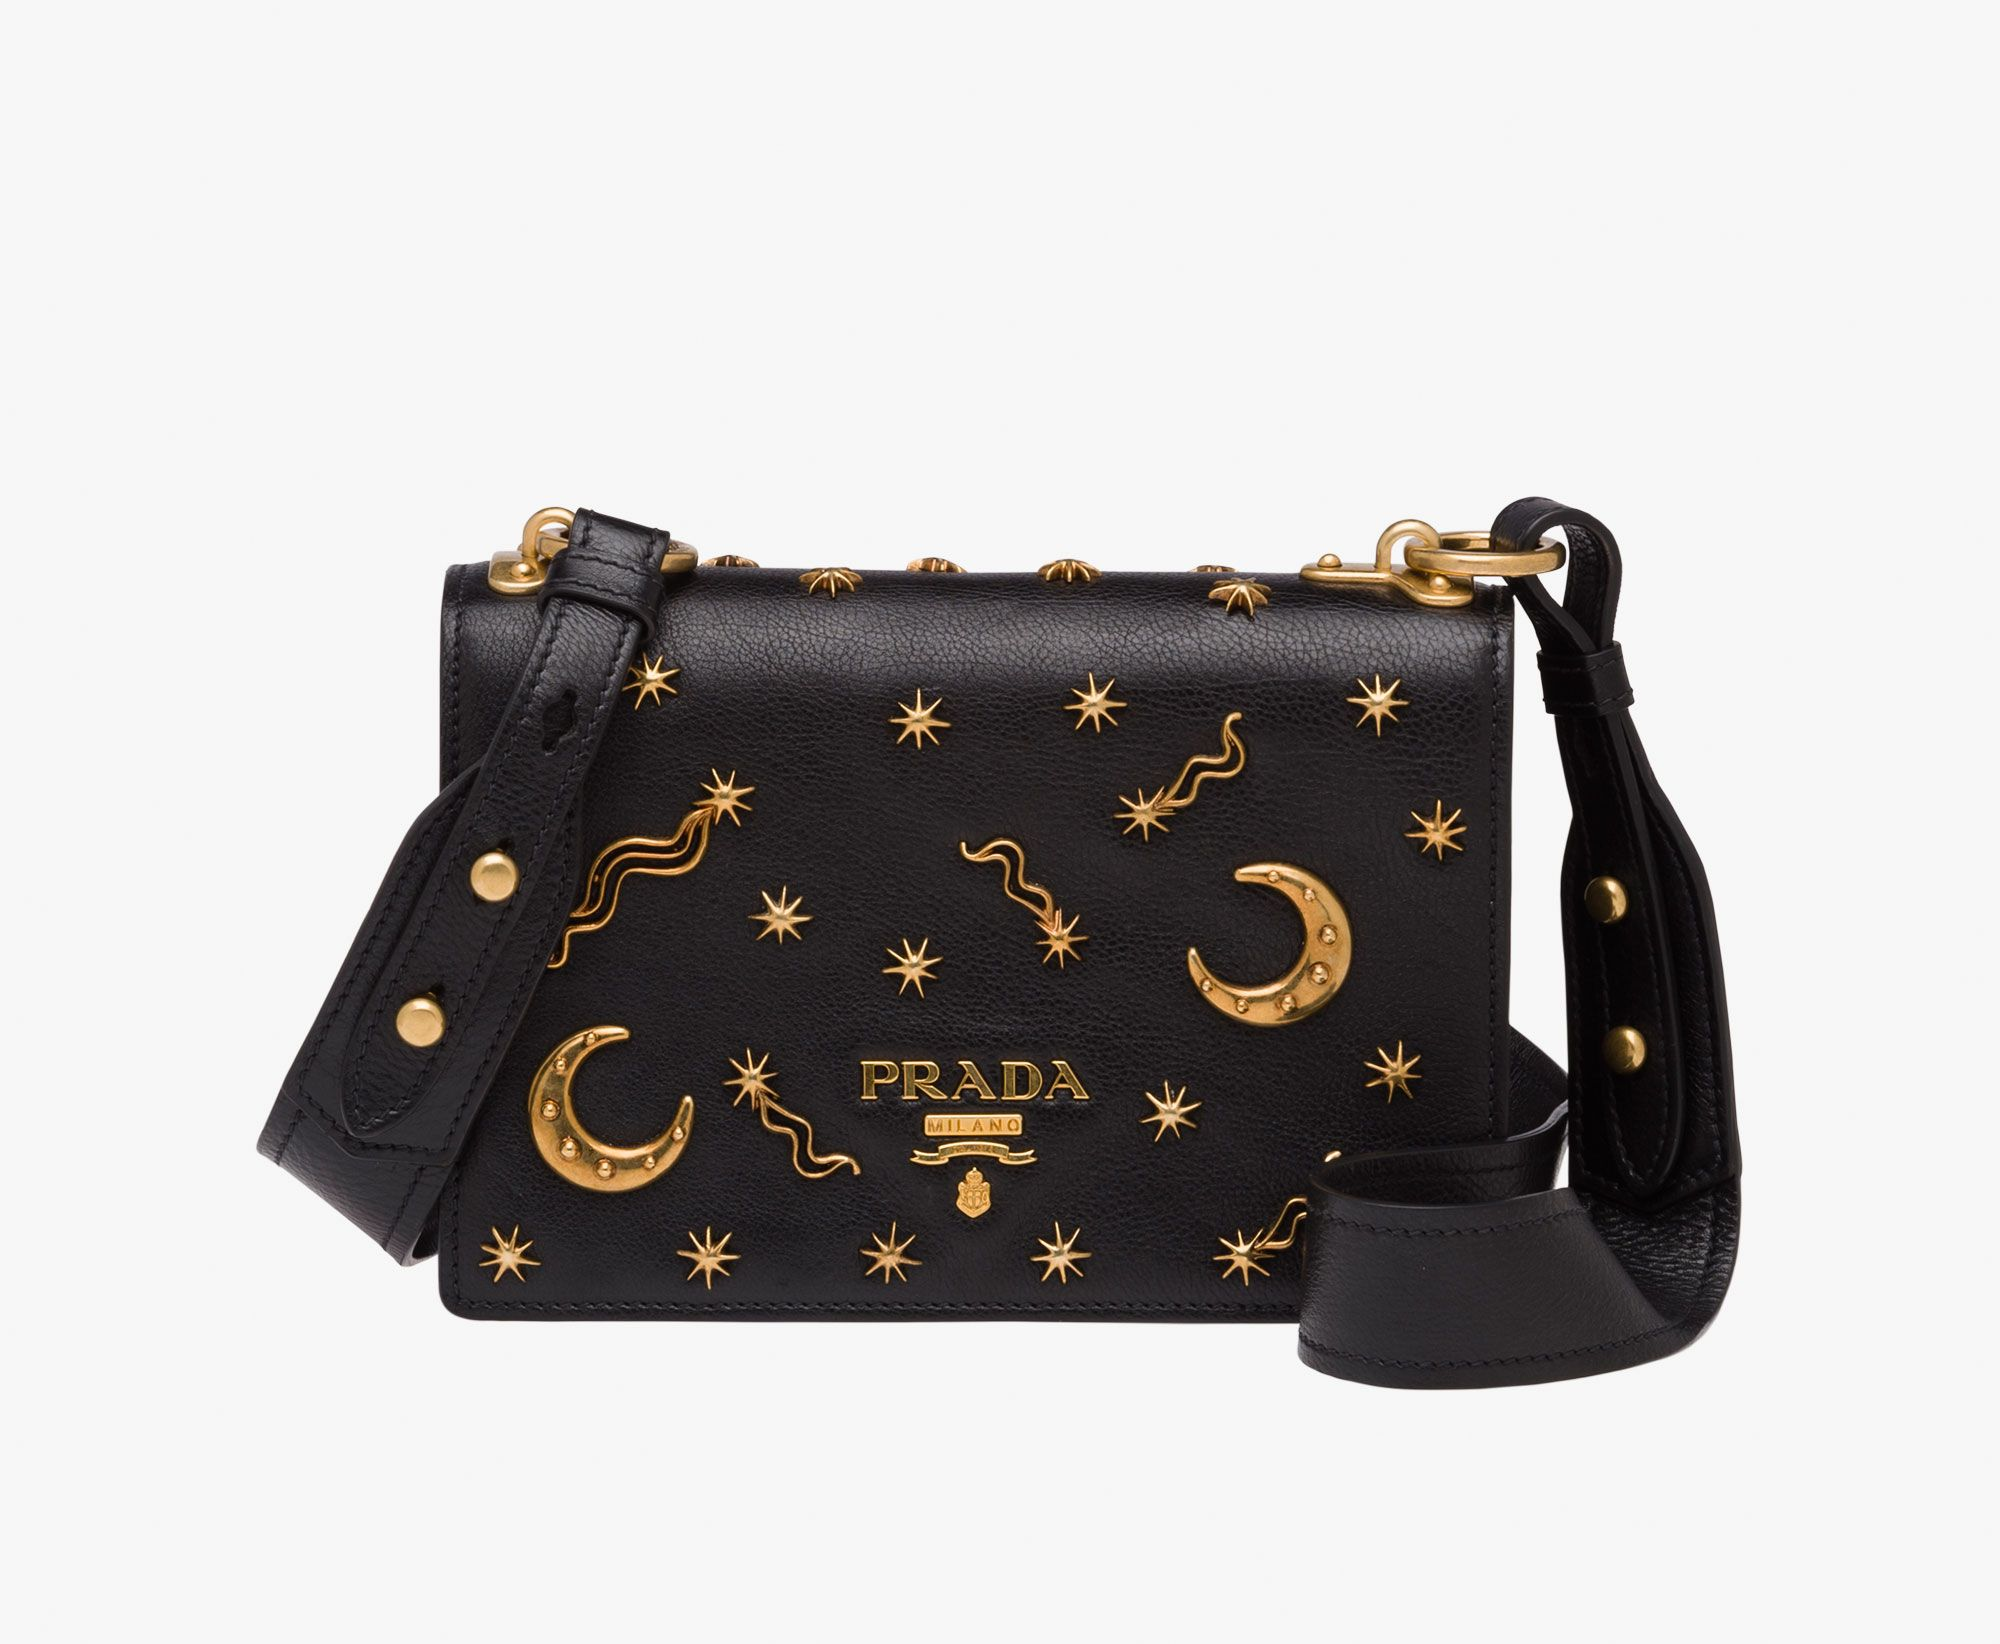 265d1df731ba Calf leather shoulder bag embellished with star and moon appliqués Leather…